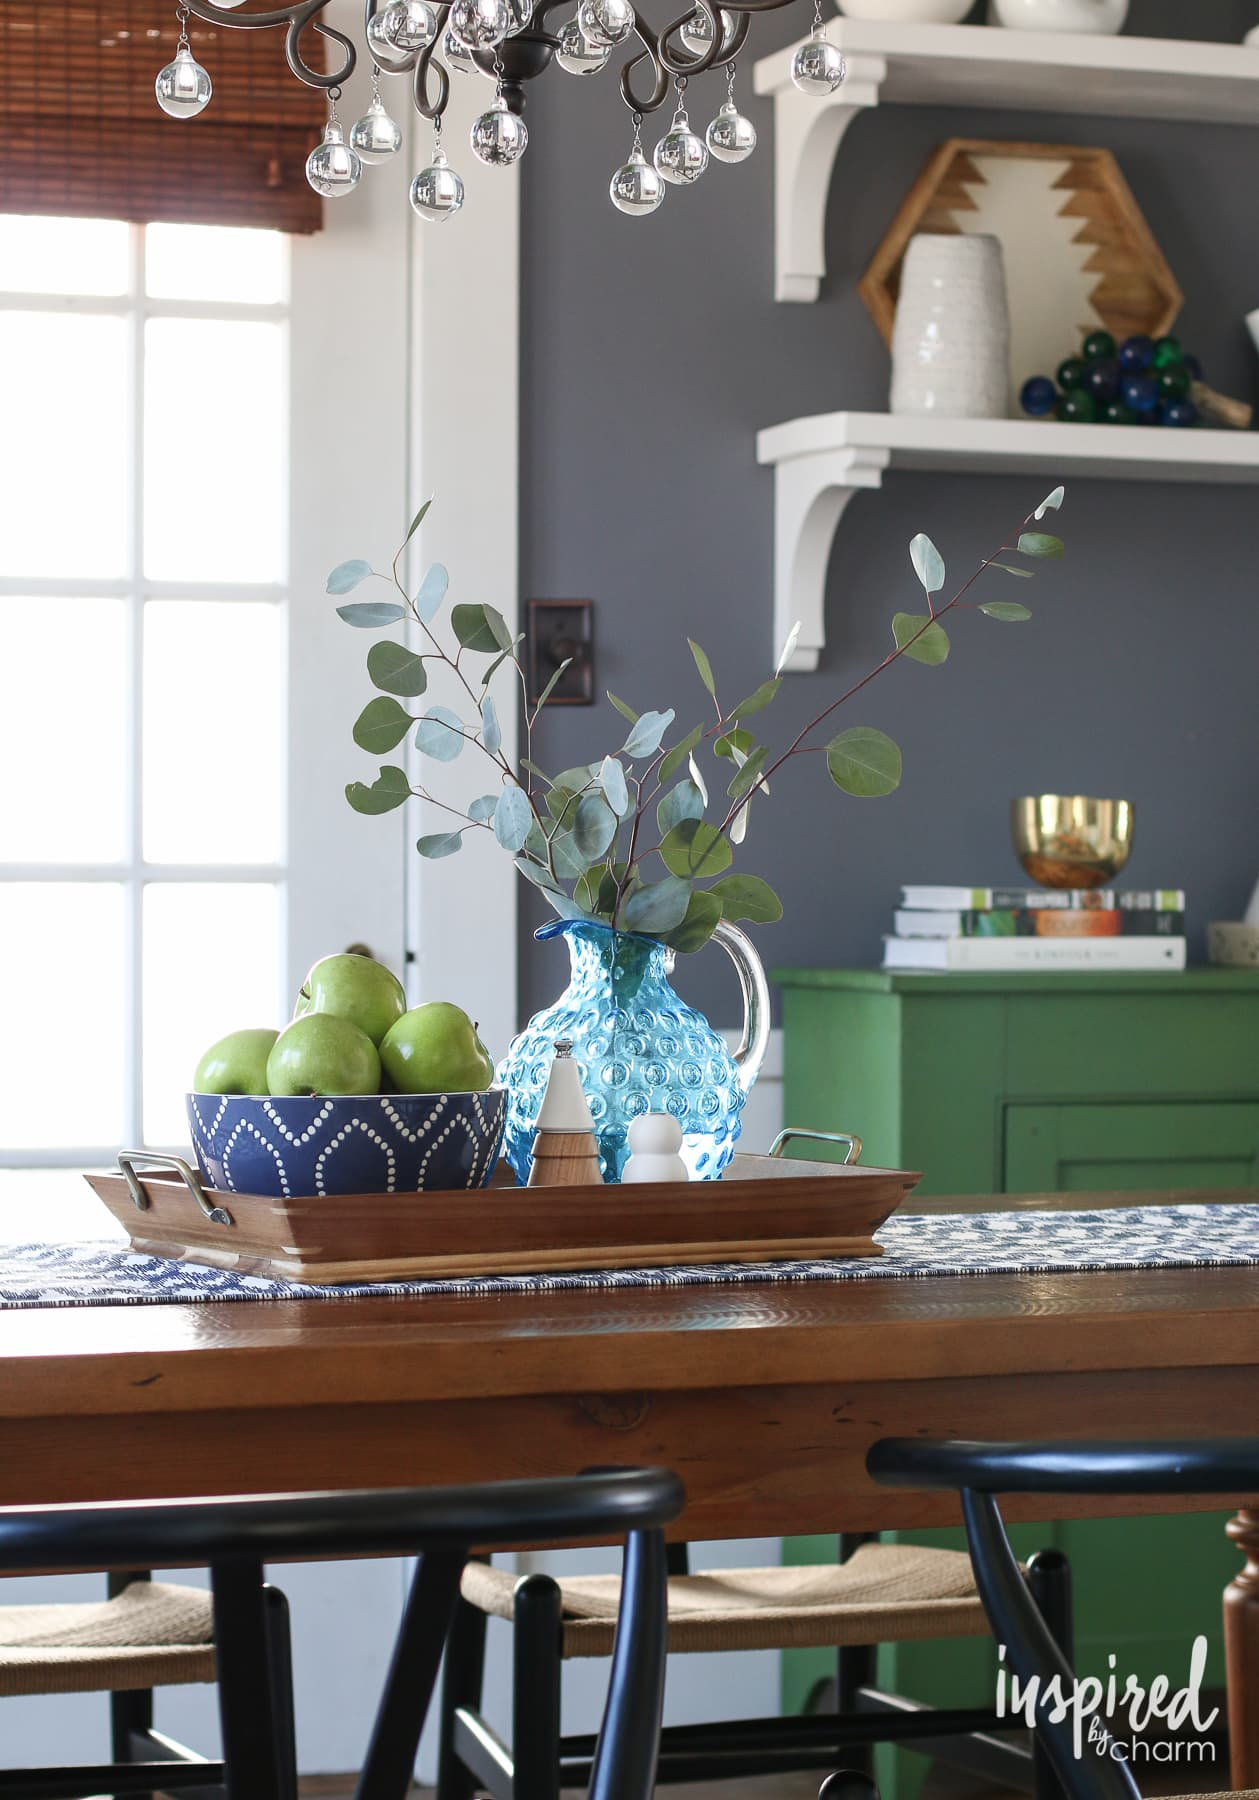 spring table styling ideas inspired by charm spring table styling ideas inspired by charm